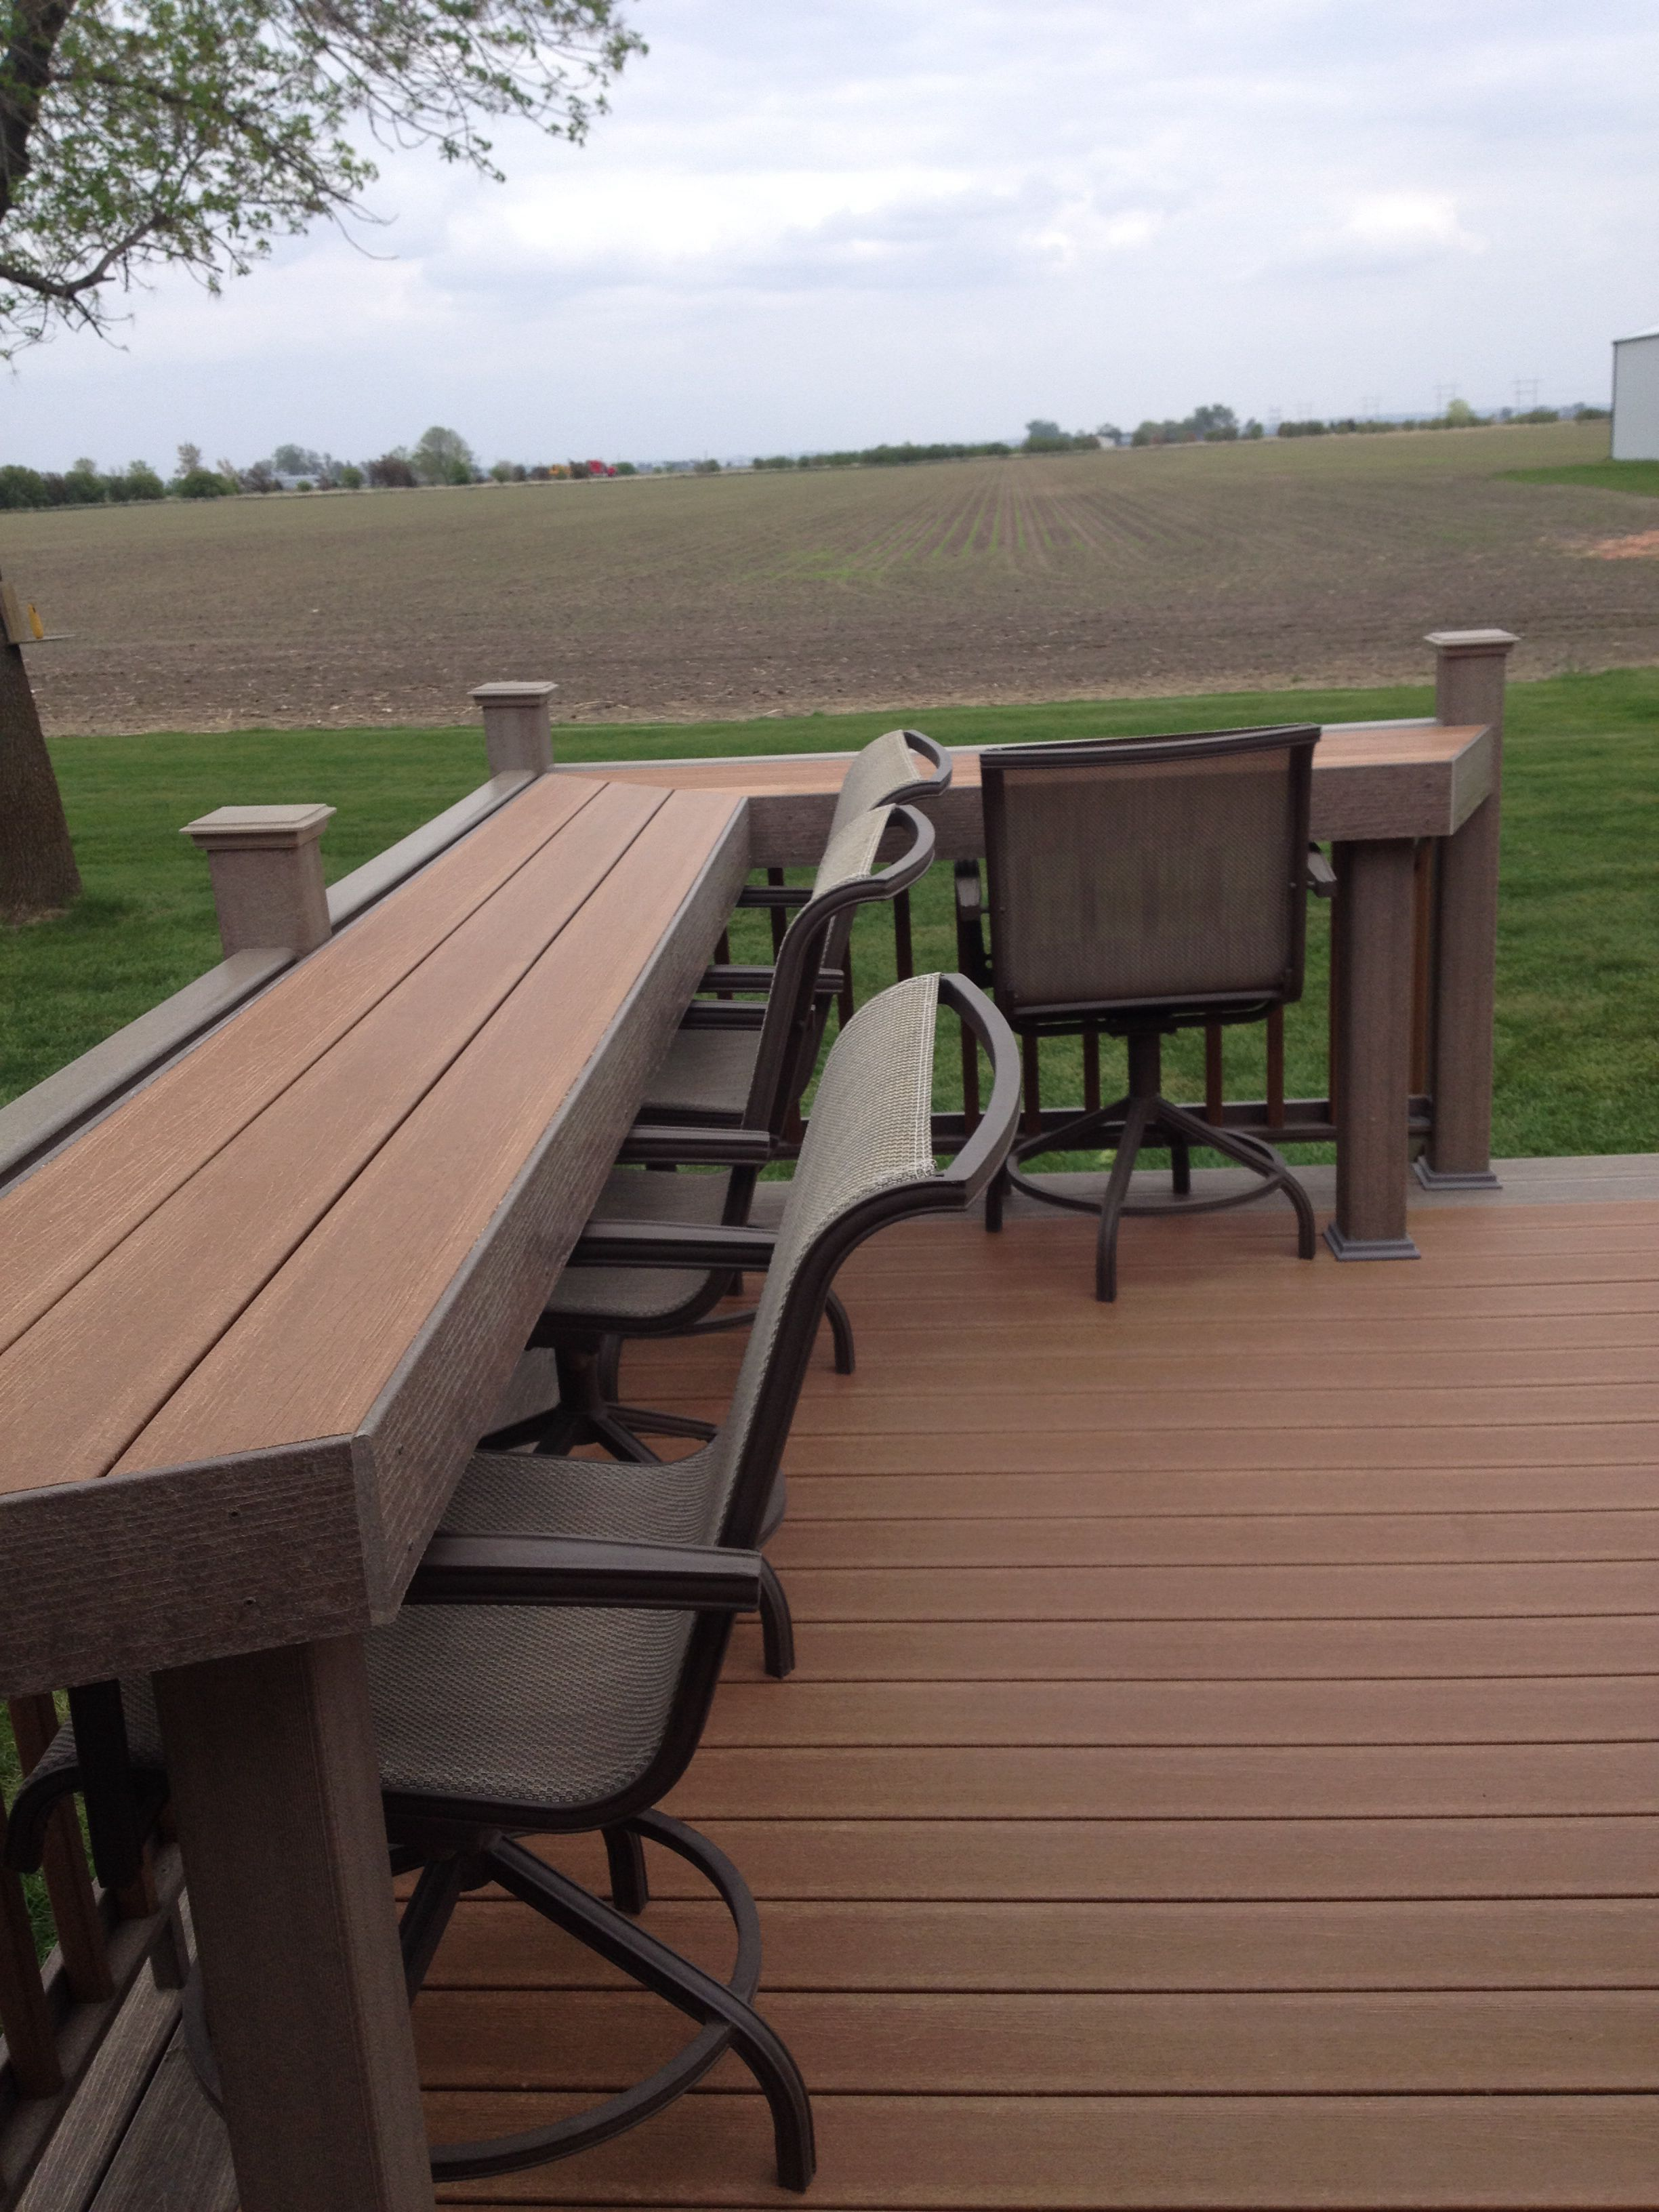 Enjoyable Our New Composite Deck And It Has A Bar Built In Deck Interior Design Ideas Jittwwsoteloinfo